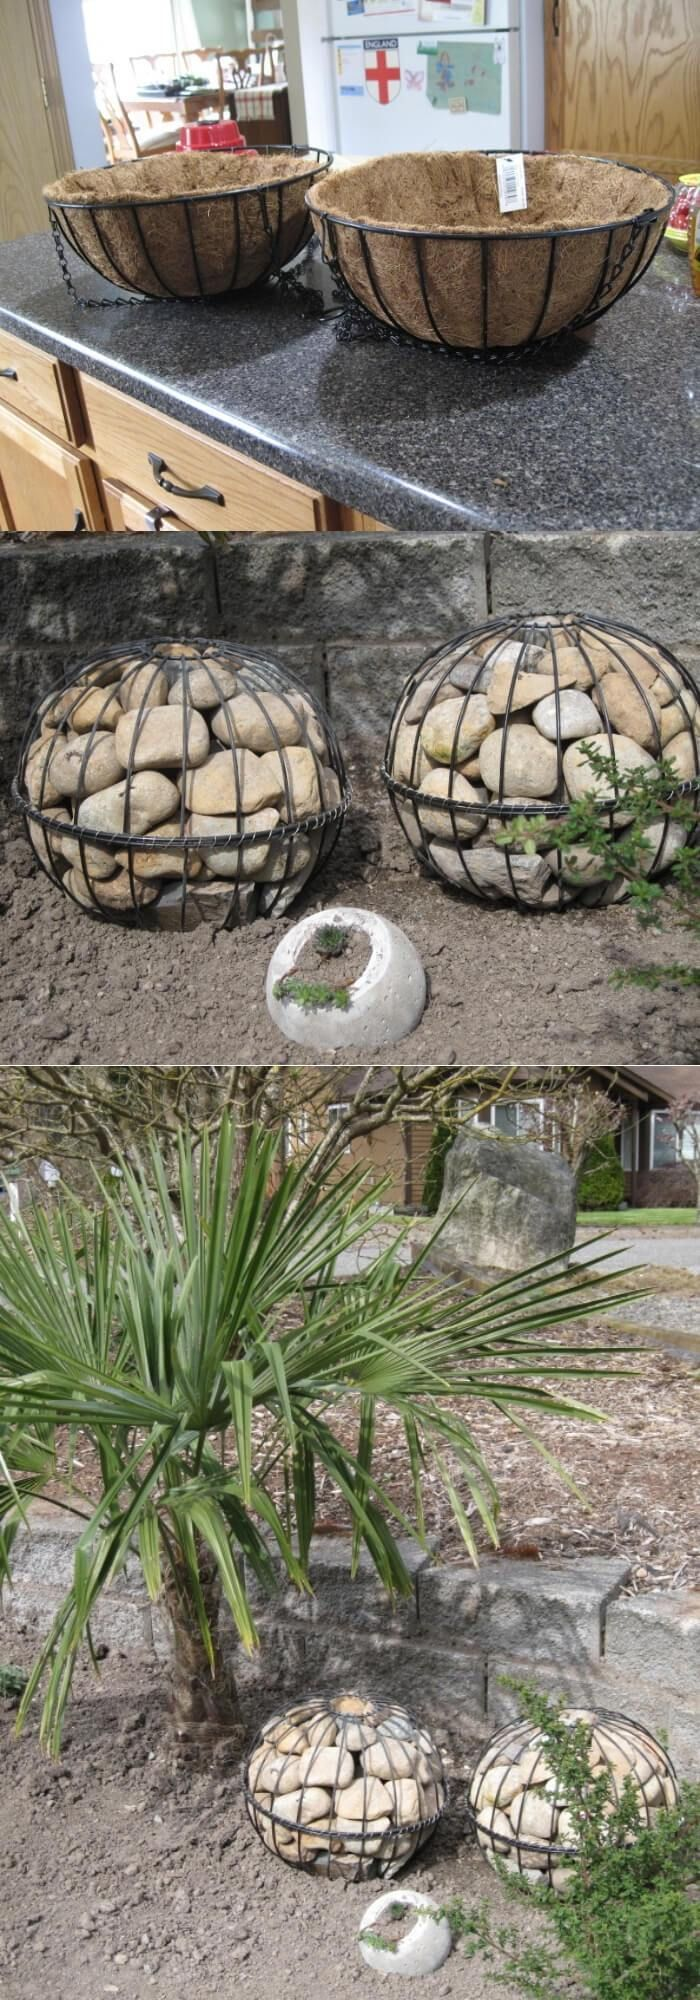 15+ Best DIY Garden Globe Ideas & Designs For 2020 is part of Garden globes, Garden spheres, Garden balls, Garden fountains outdoor, Diy garden, Backyard garden - Looking for something cool to do for your garden  Take a look at these creative garden globe ideas from different materials (upcycled, concrete   )